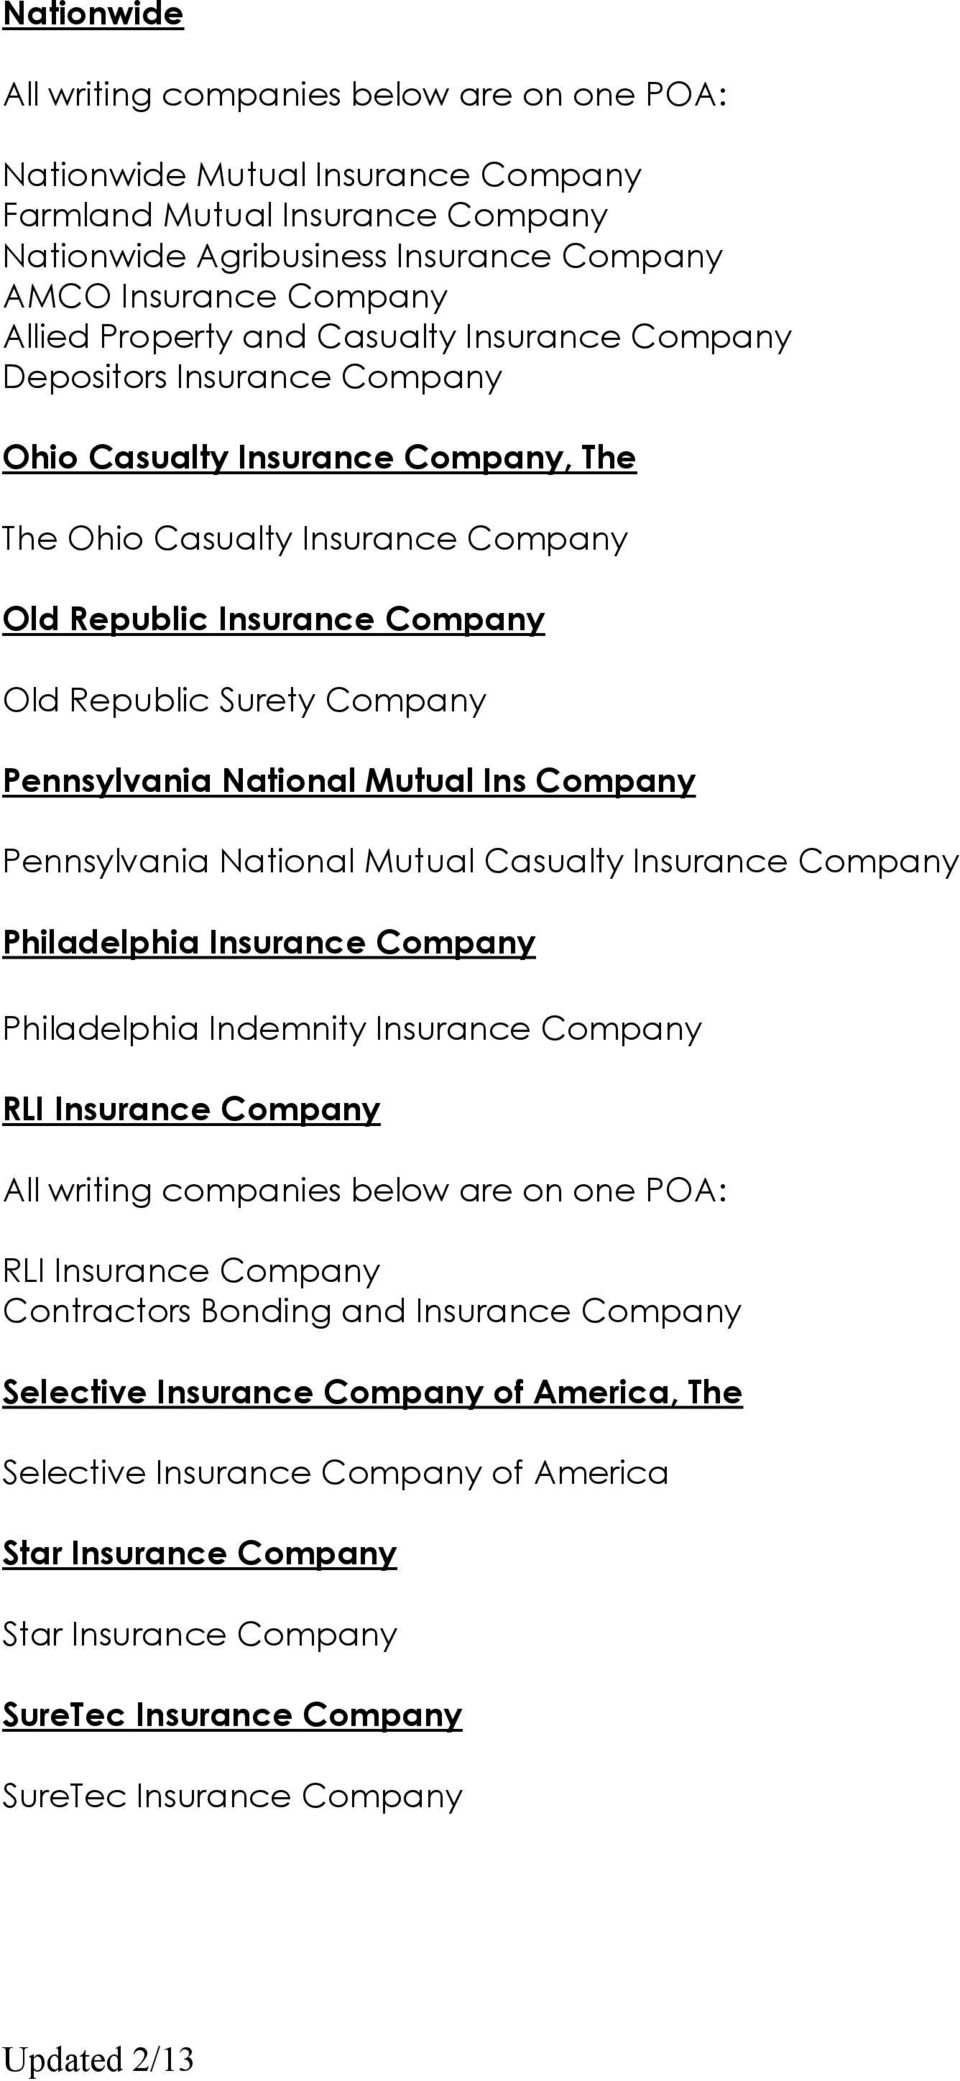 Company Pennsylvania National Mutual Casualty Insurance Company Philadelphia Insurance Company Philadelphia Indemnity Insurance Company RLI Insurance Company RLI Insurance Company Contractors